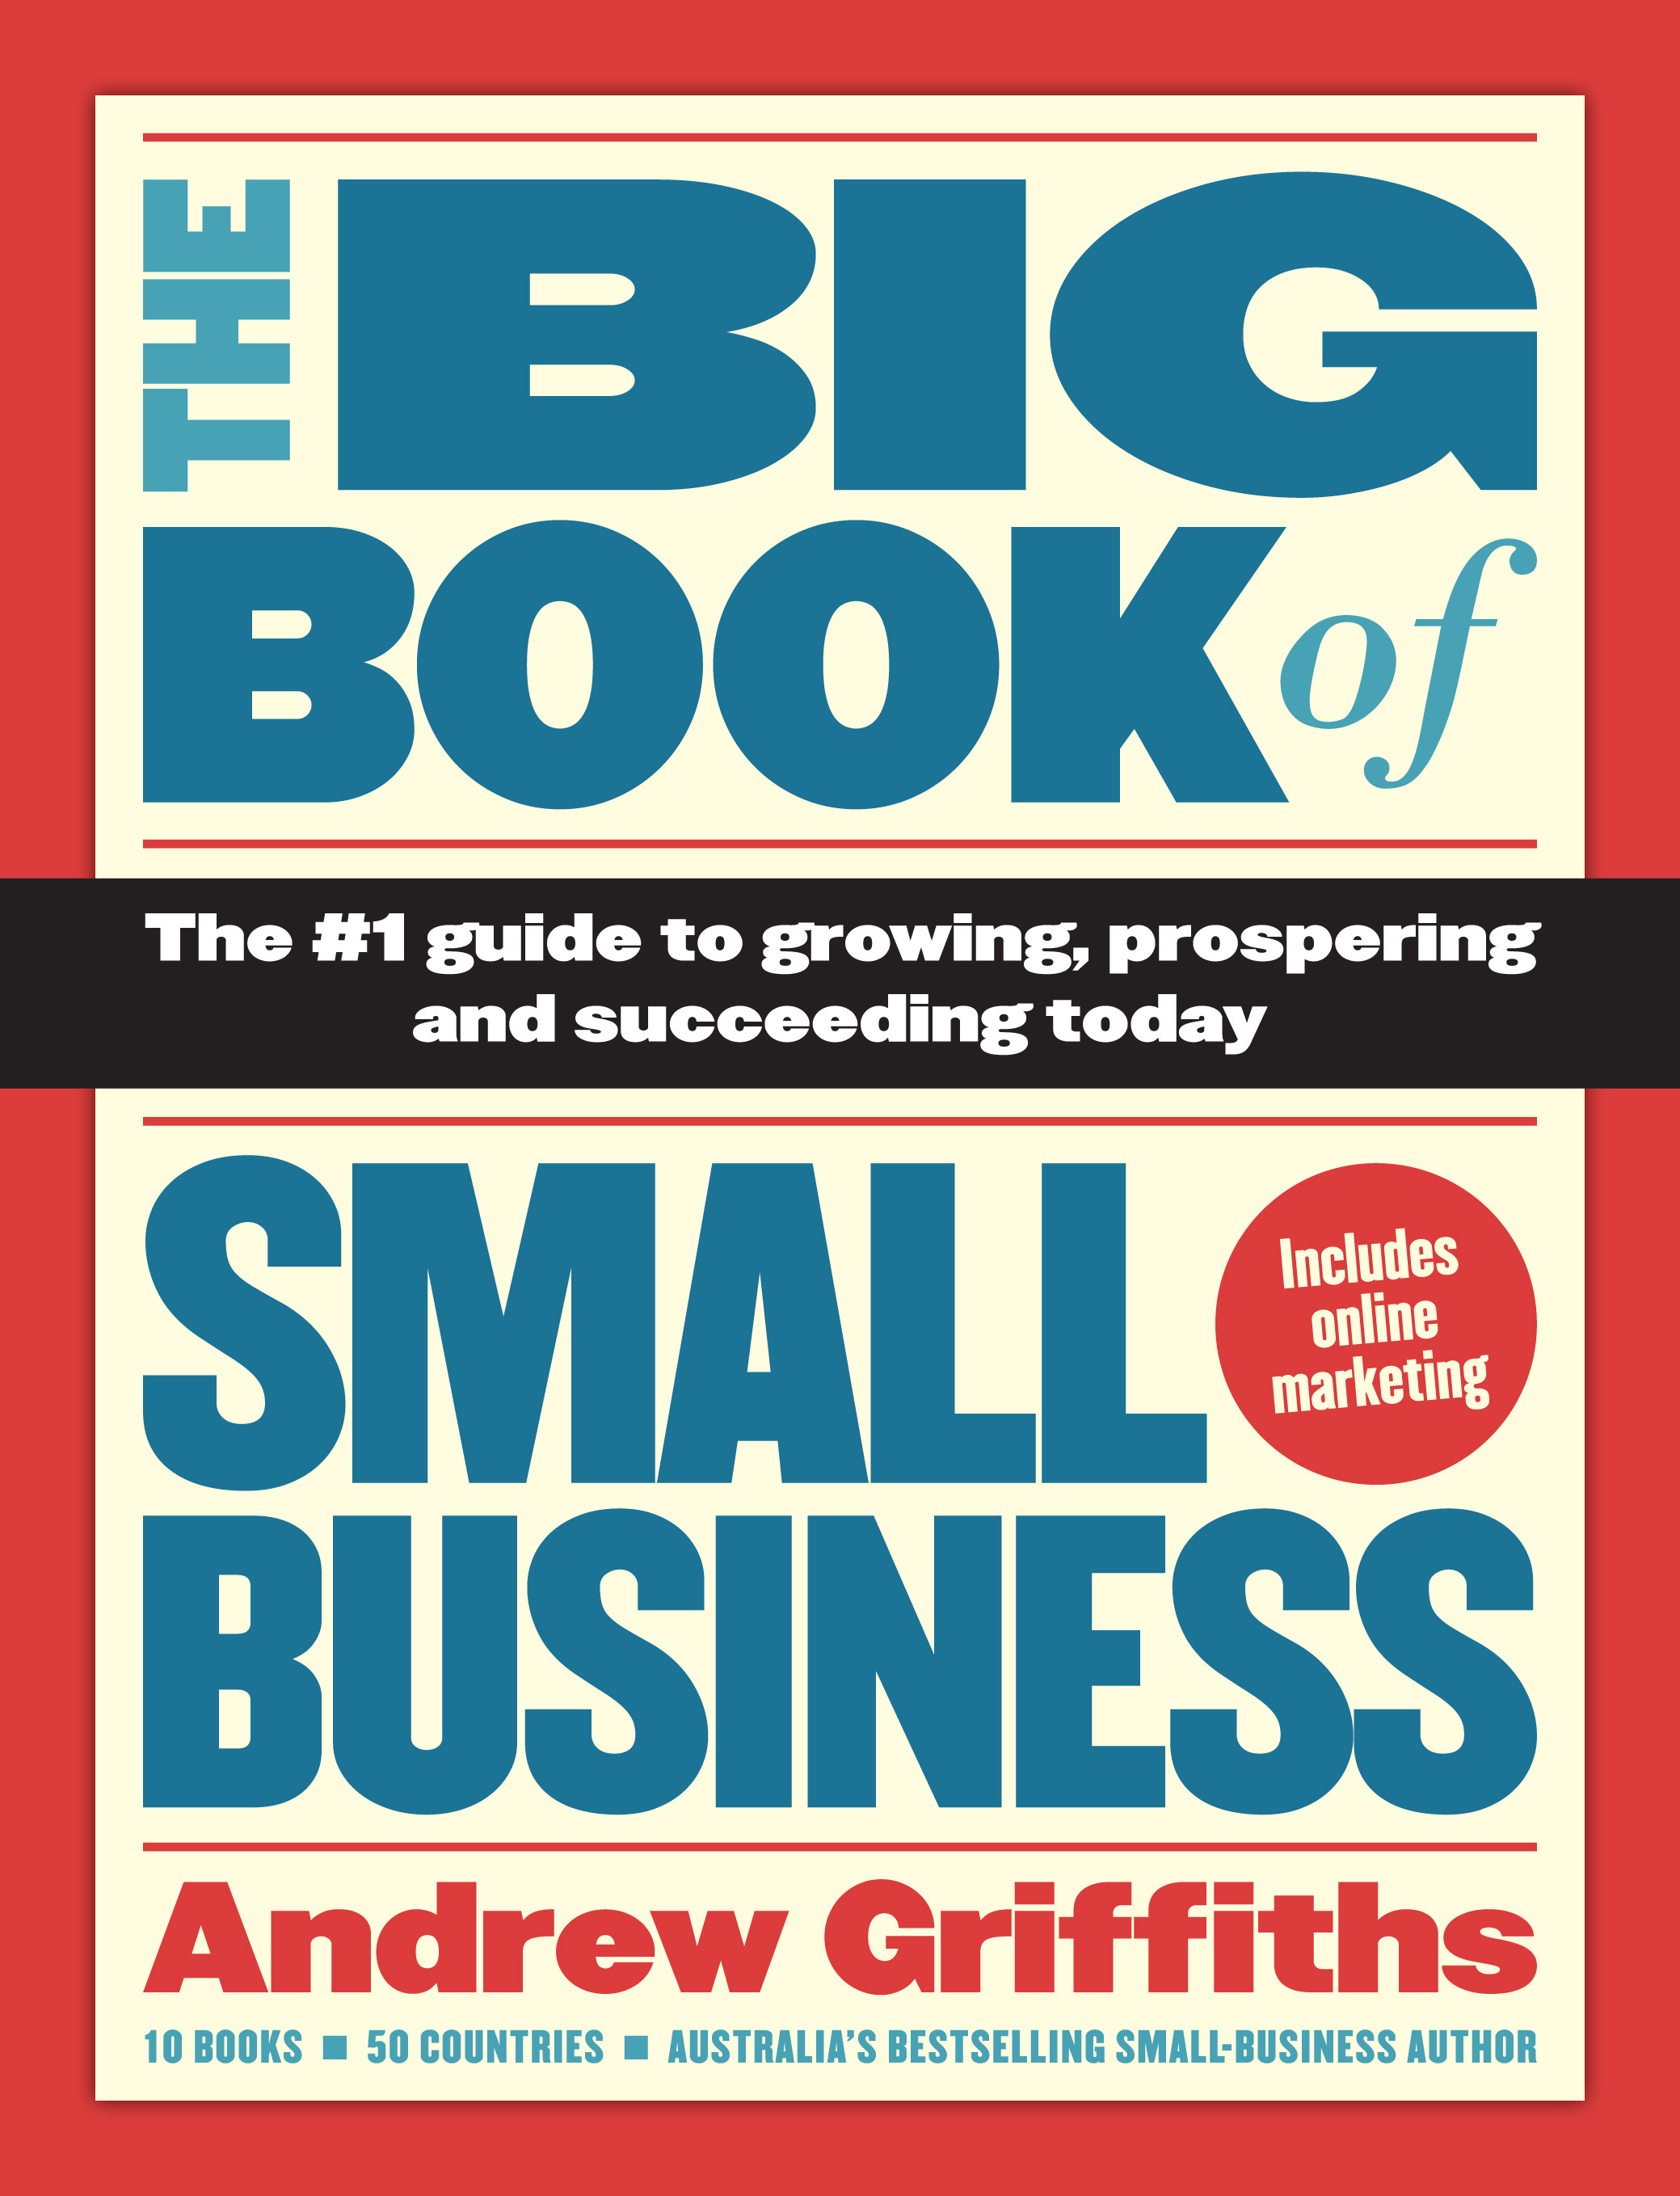 Business Book Cover Name : Media resources